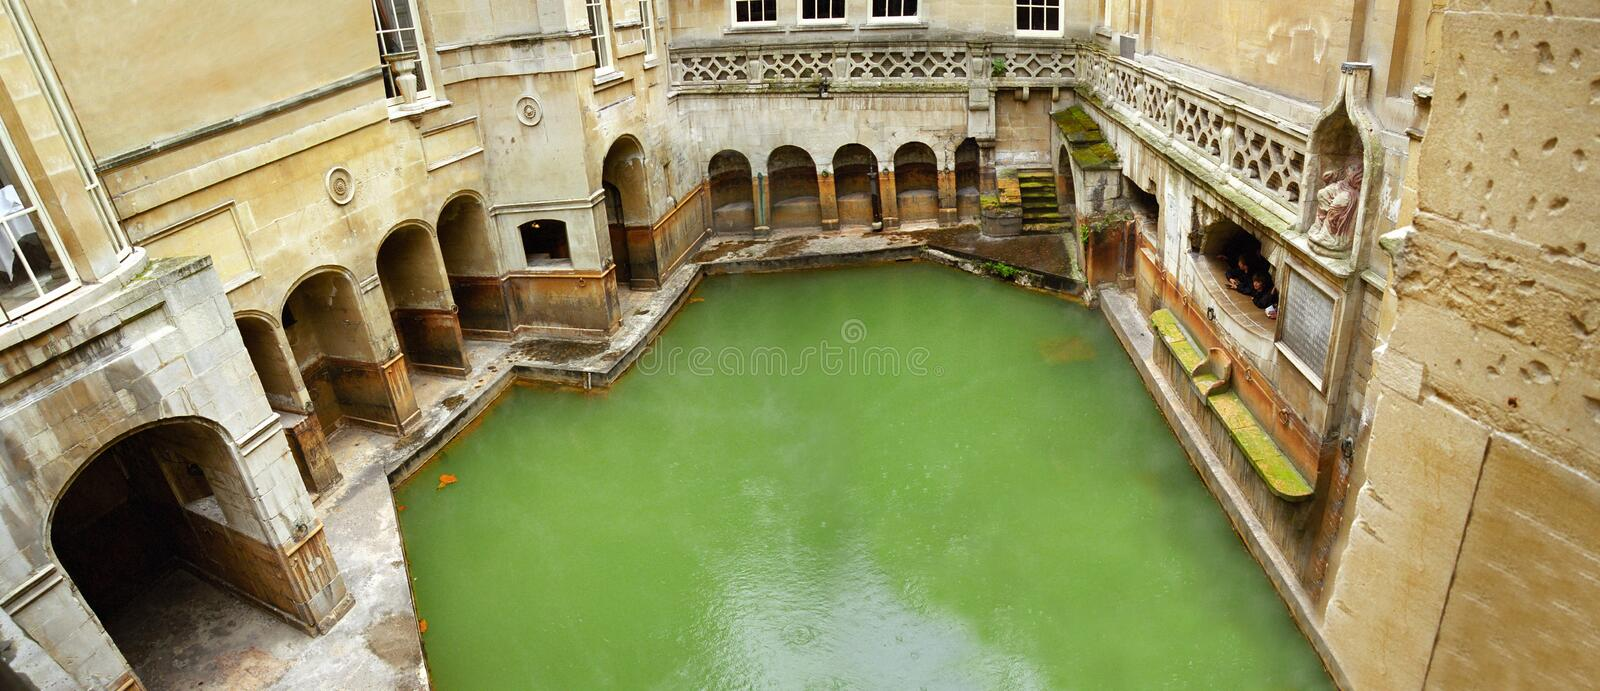 Download Roman Baths In Bath, England Stock Image - Image: 2146547